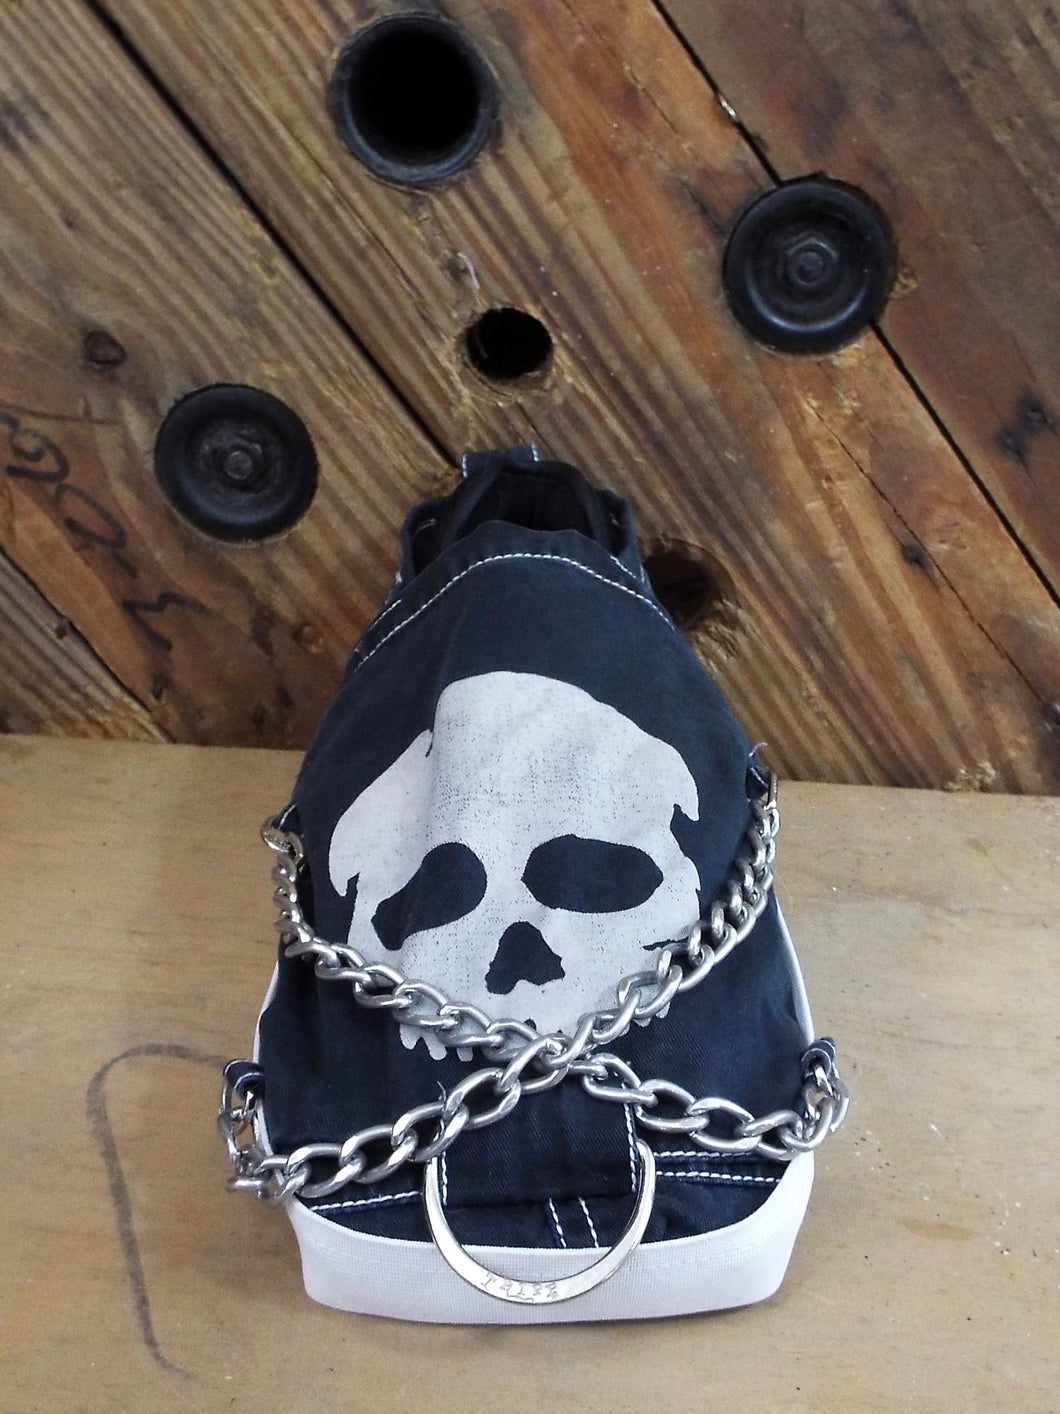 The Strummer medical orthopedic post-op shoe cover. Unique grunge style. One of a kind.